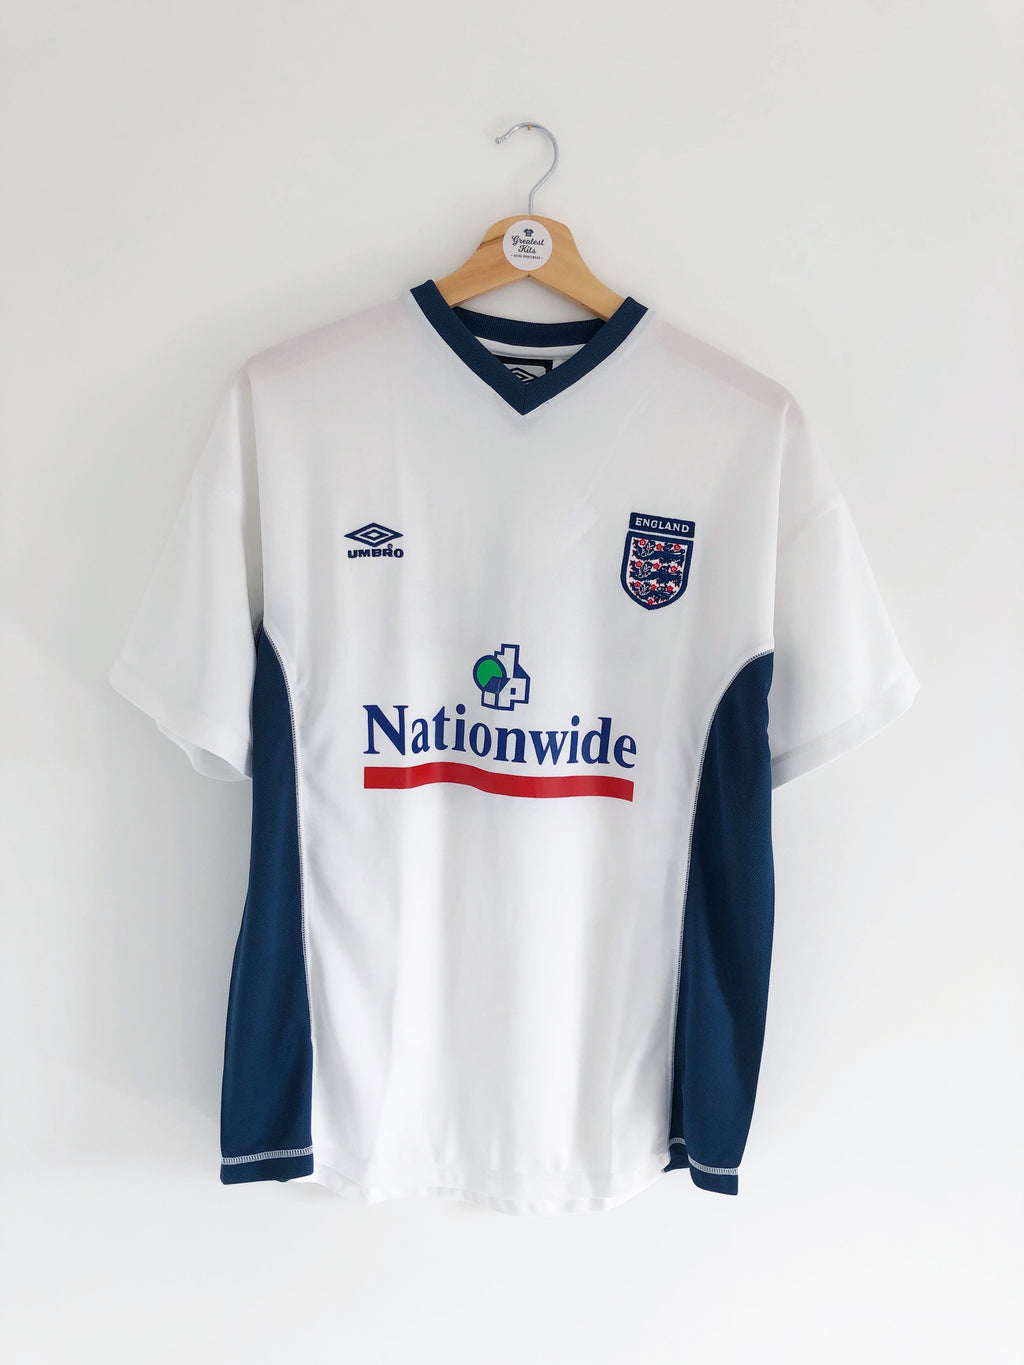 1999/01 England Training Shirt (M) 8.5/10